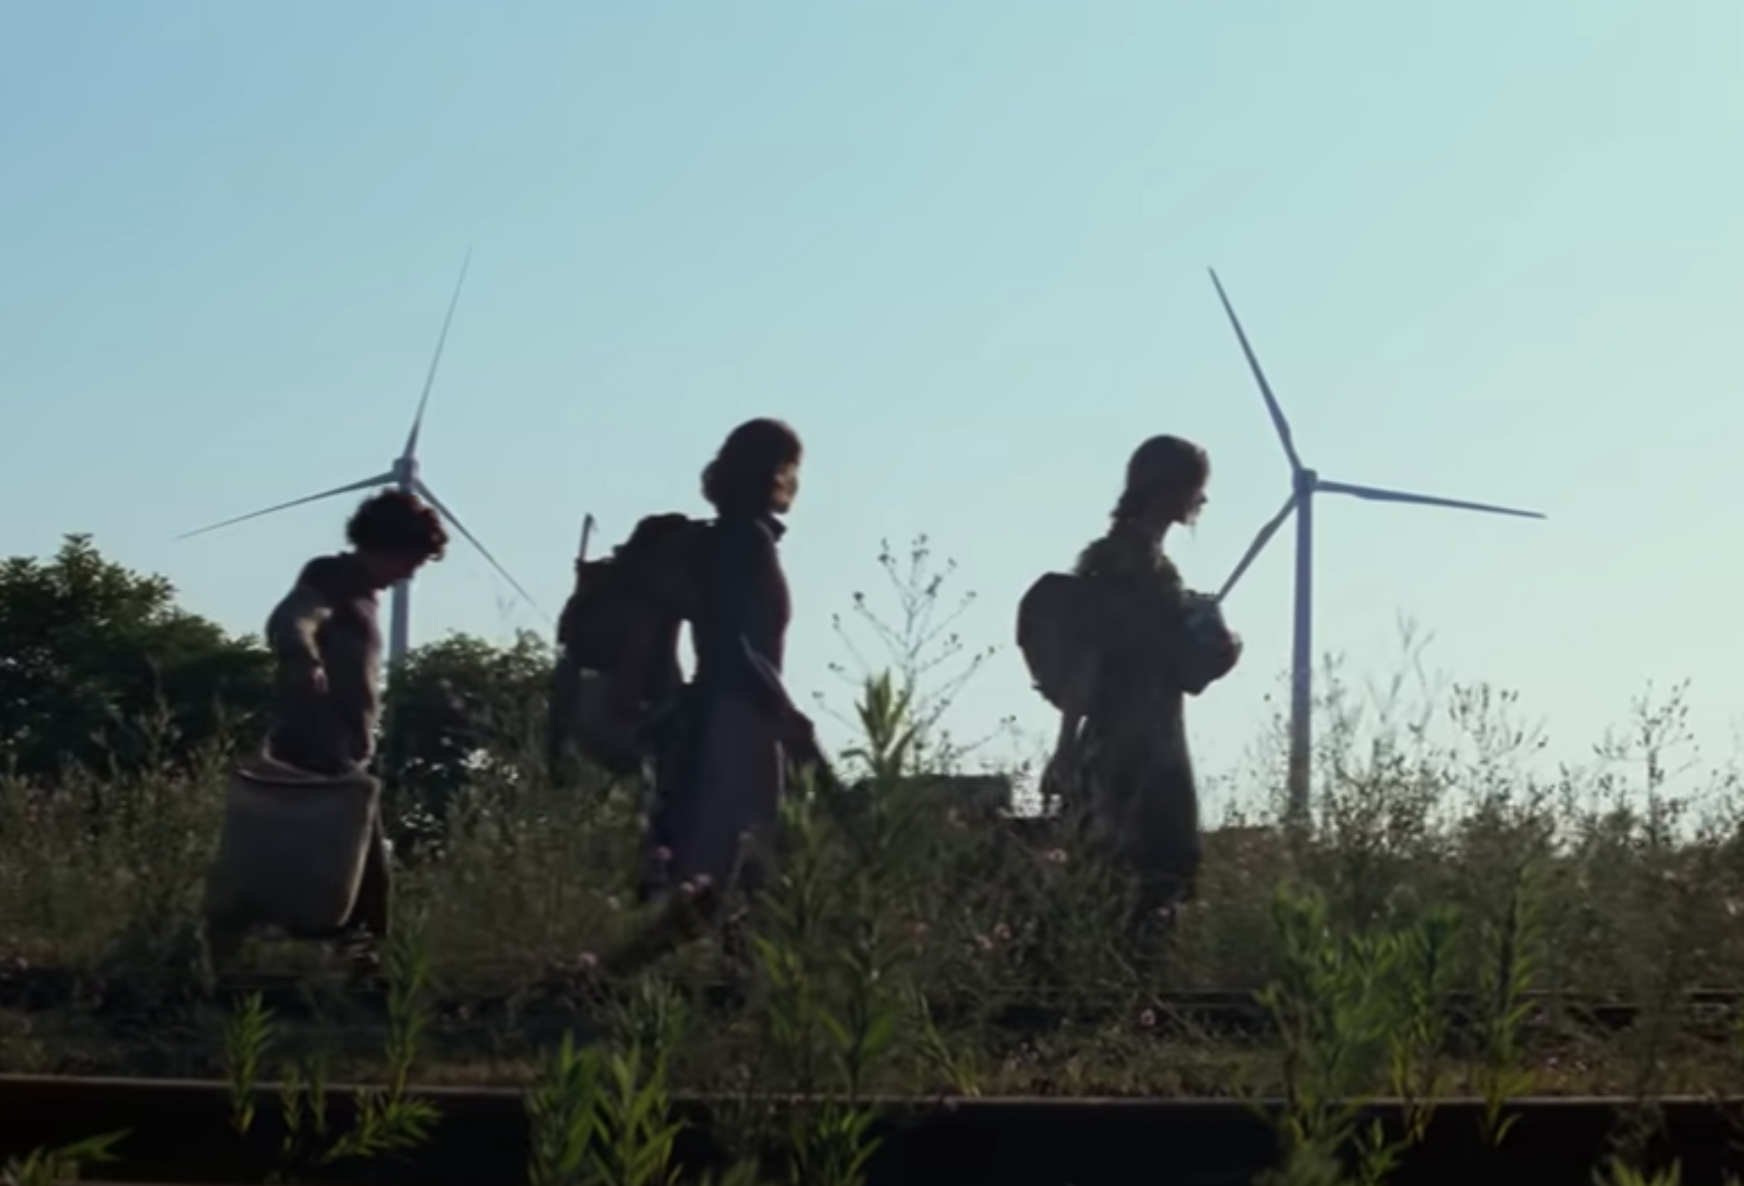 A group of three quietly walking in a field